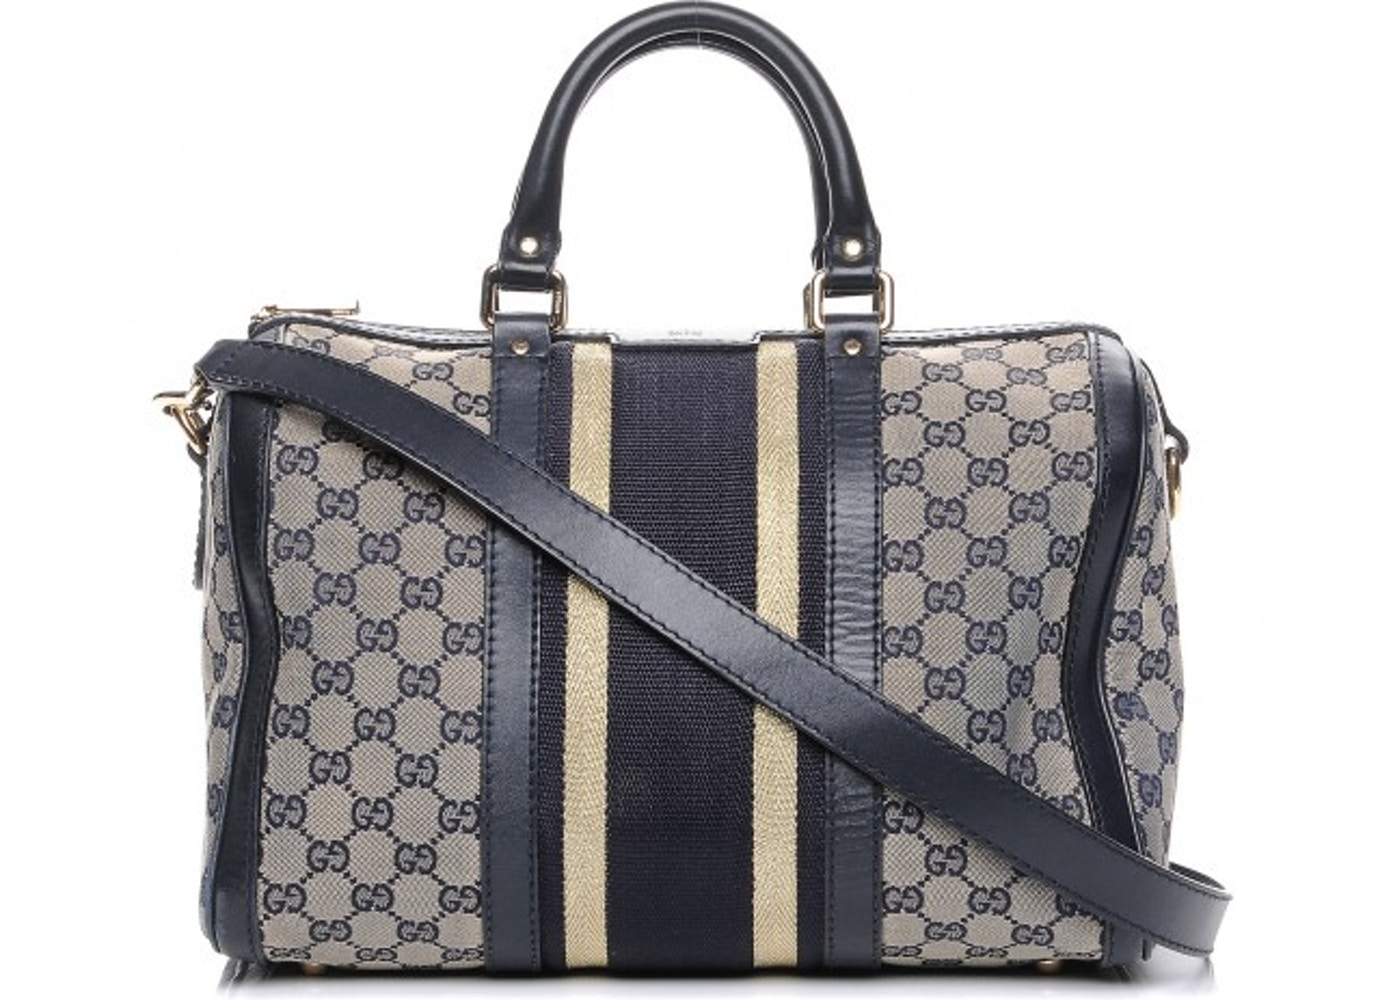 c6236585c5e572 Gucci Vintage Web Boston Bag Vintage Web GG Web Stripes Medium ...